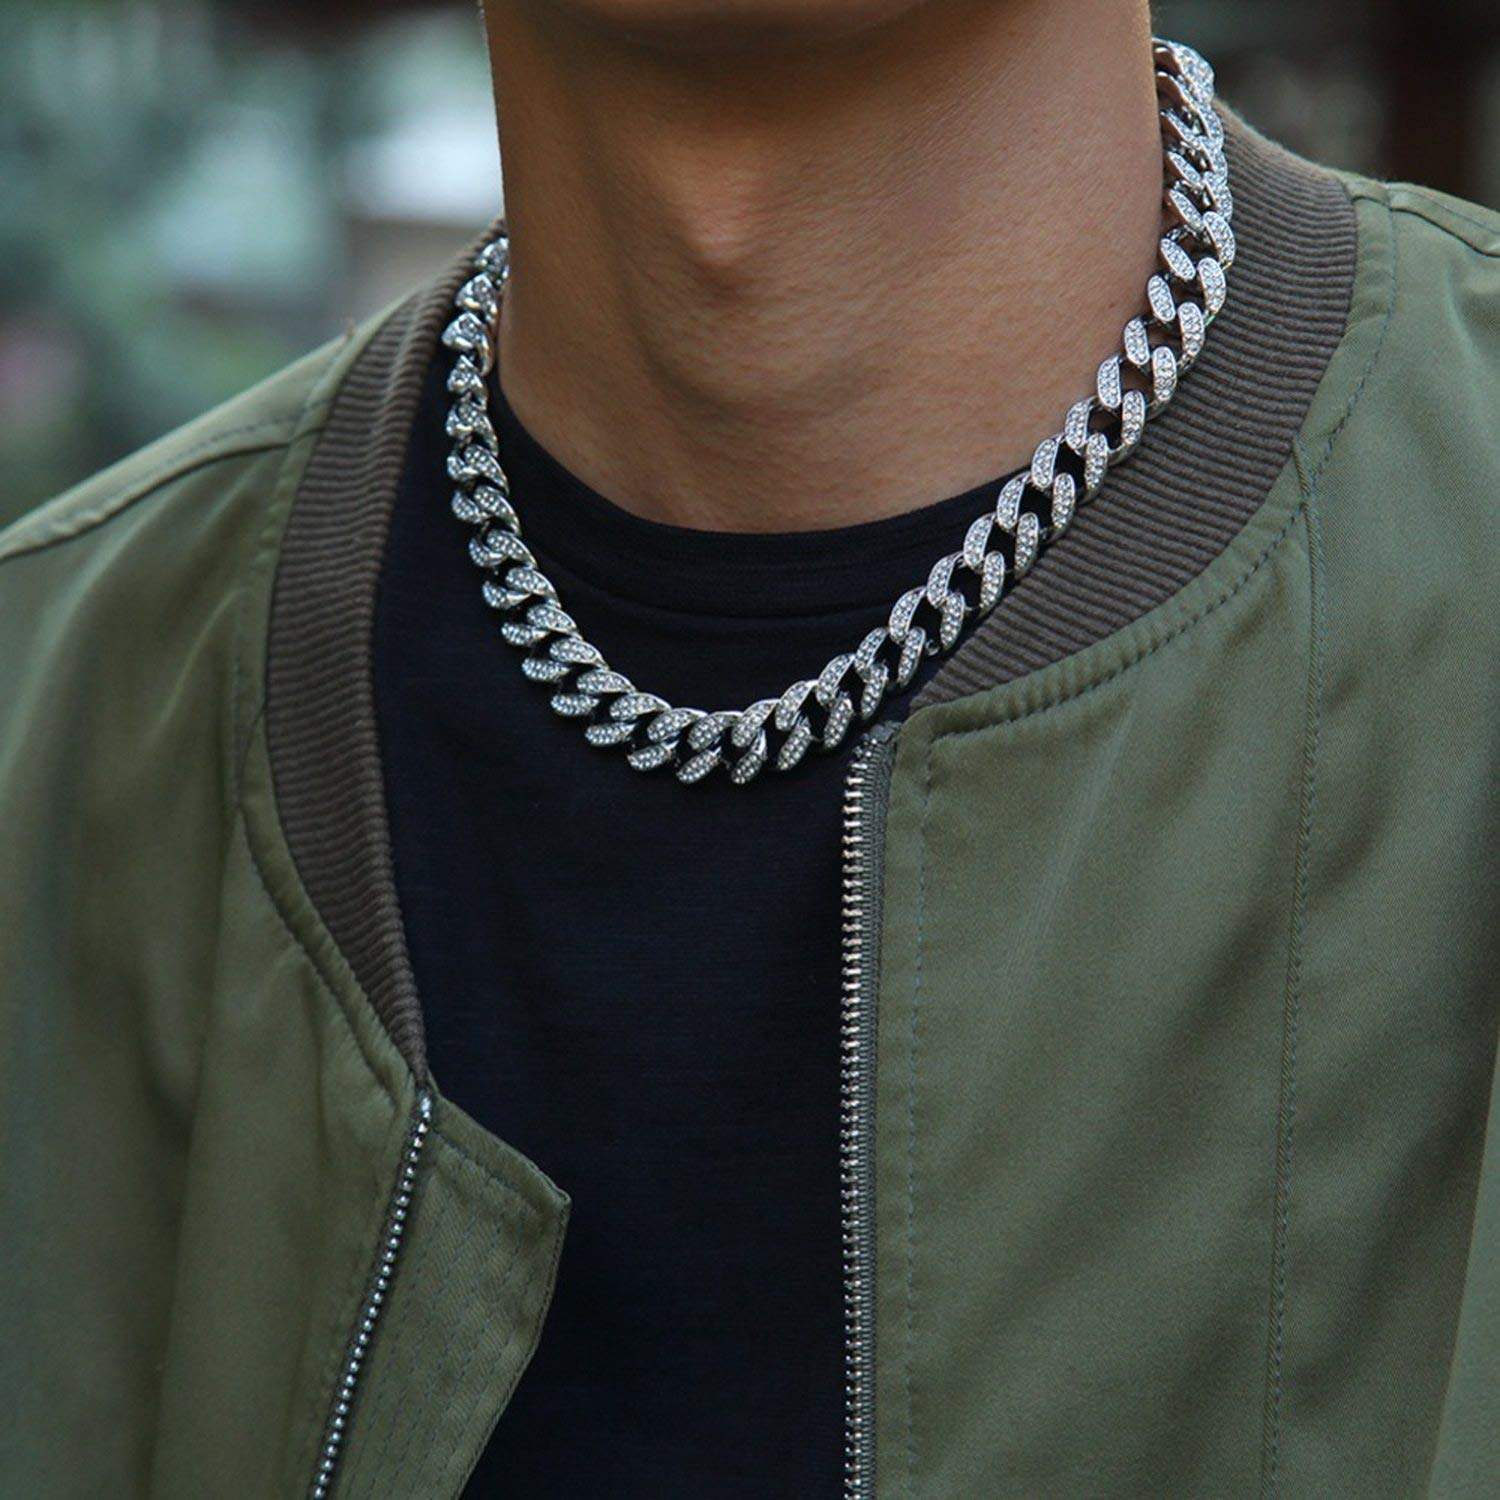 Monica/'s house 13mm Iced Out Necklace Chain Hip hop Jewelry Choker Gold Silver Rhinestone Clasp for Mens Rapper Fashion Necklaces Link